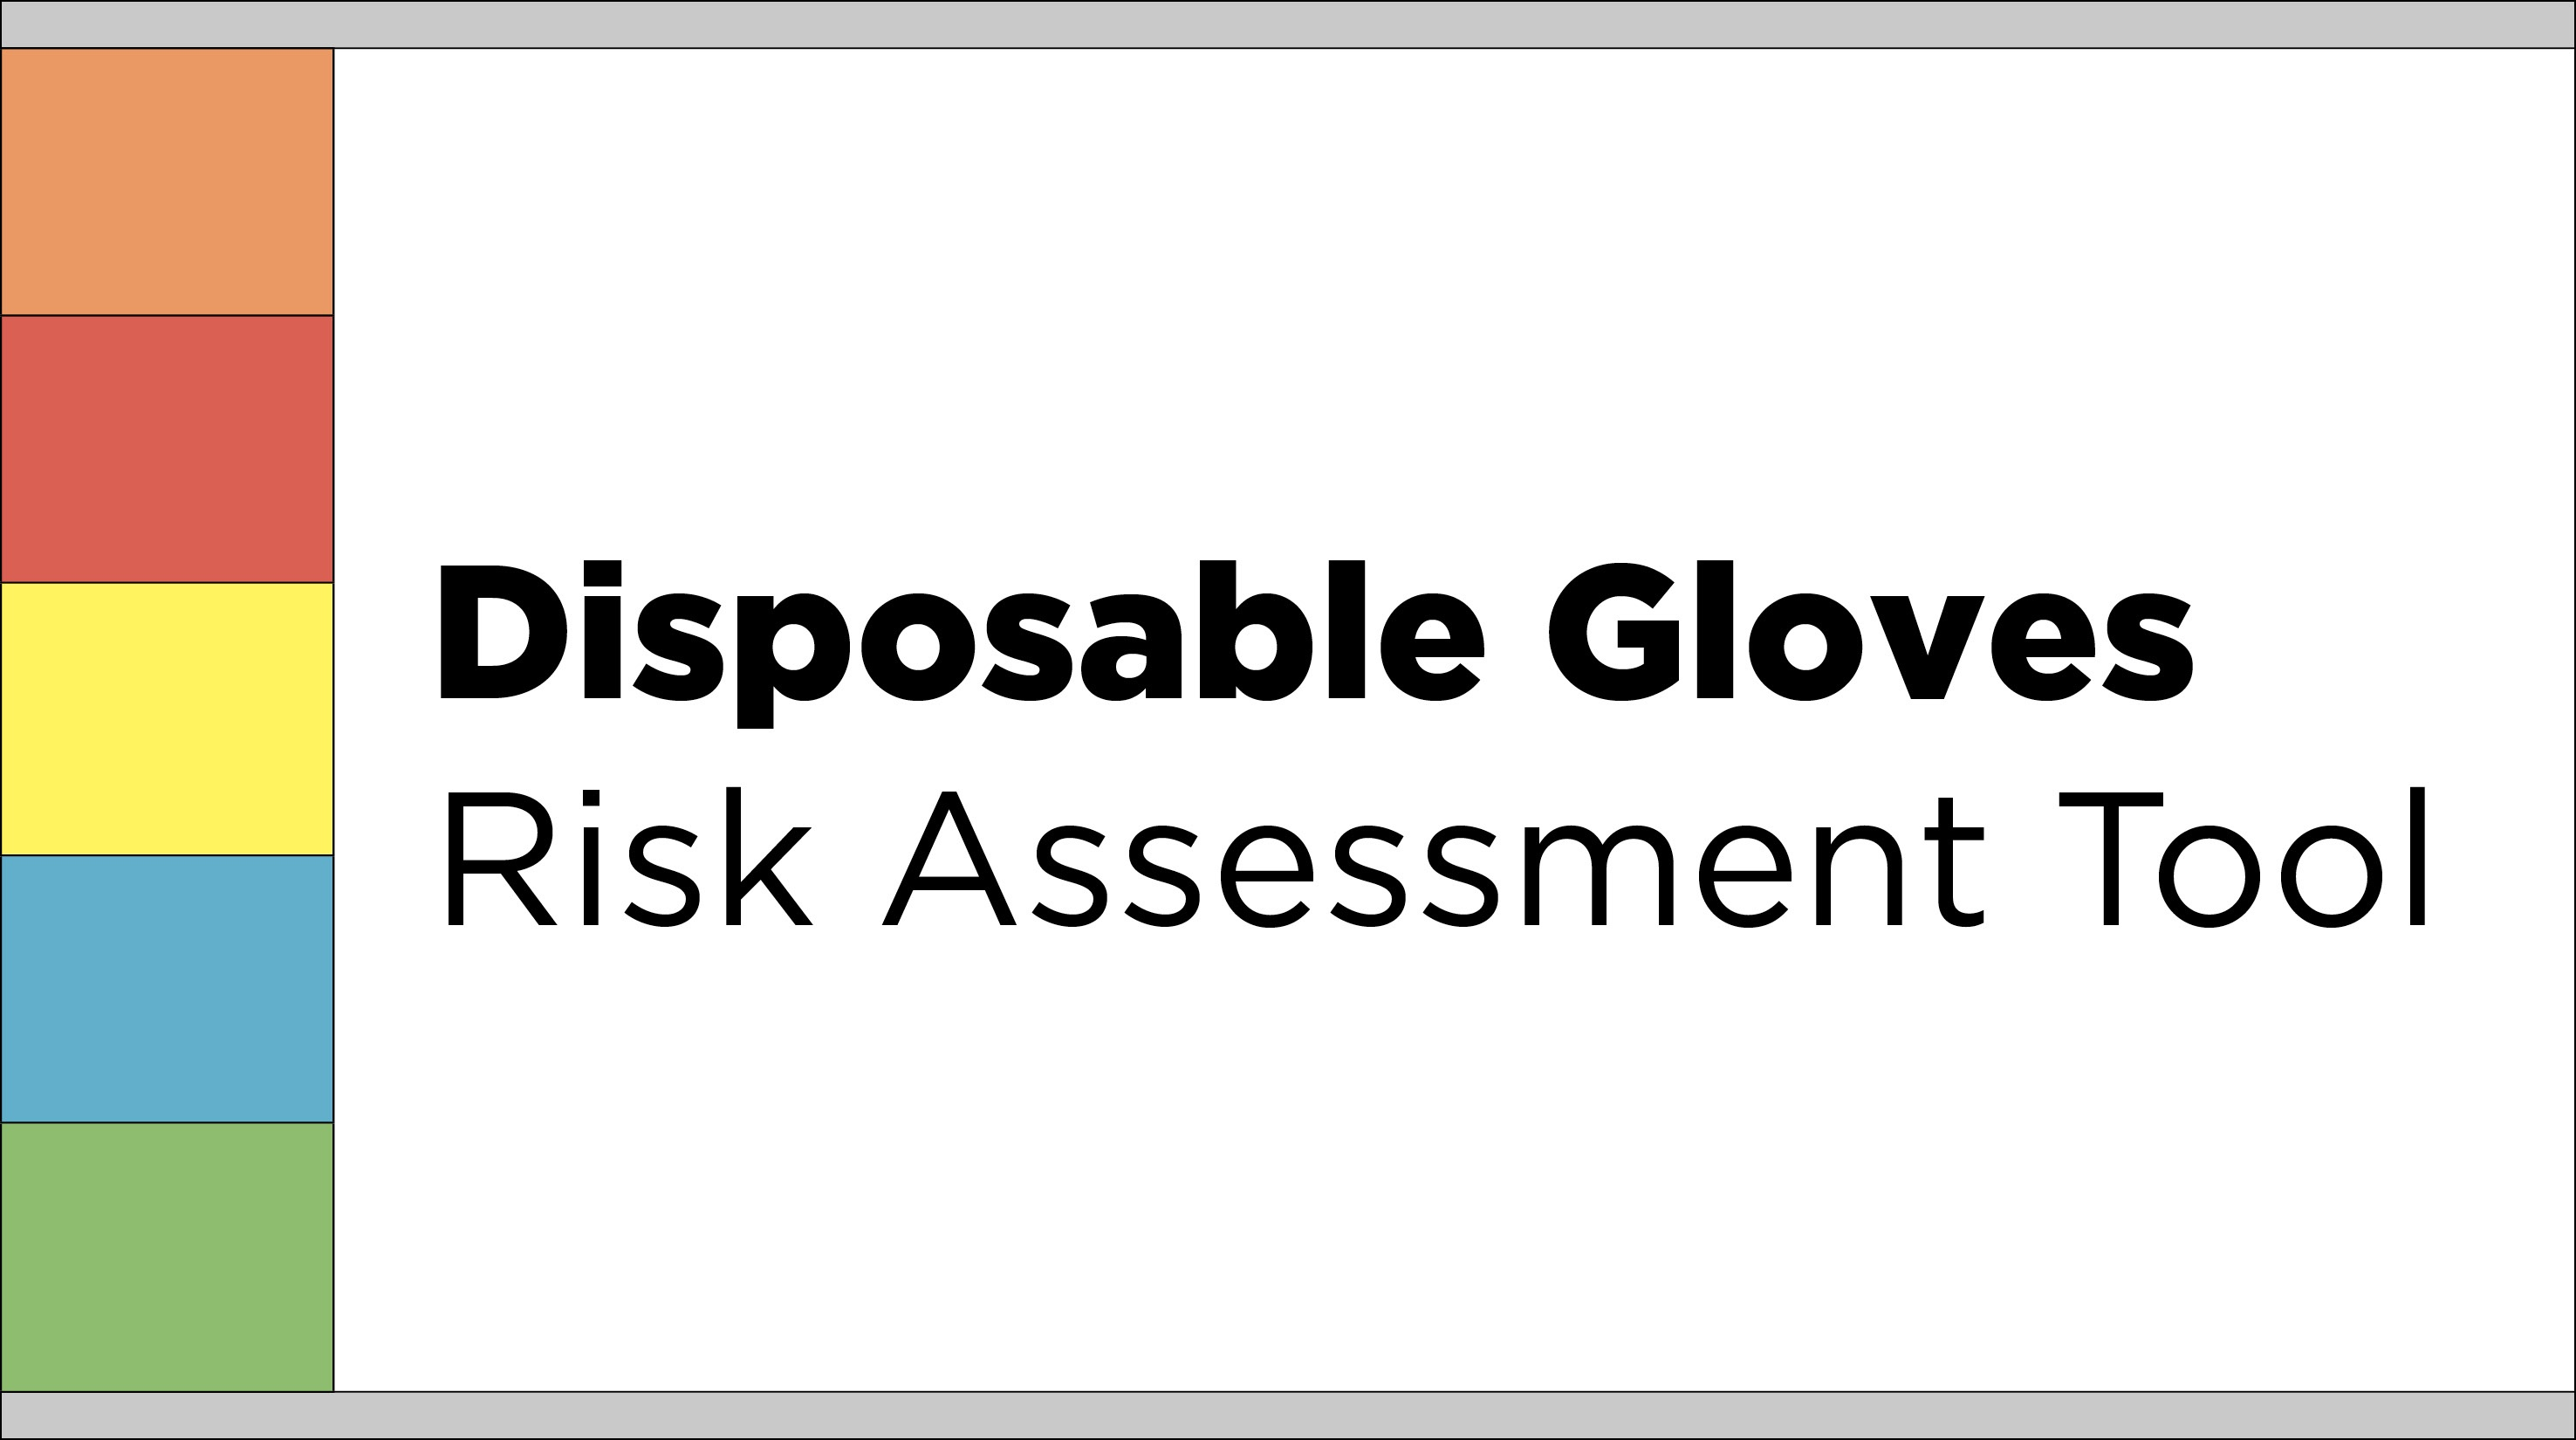 EP_Risk_Assessment_Tool_Thumbnail_10July17.jpg